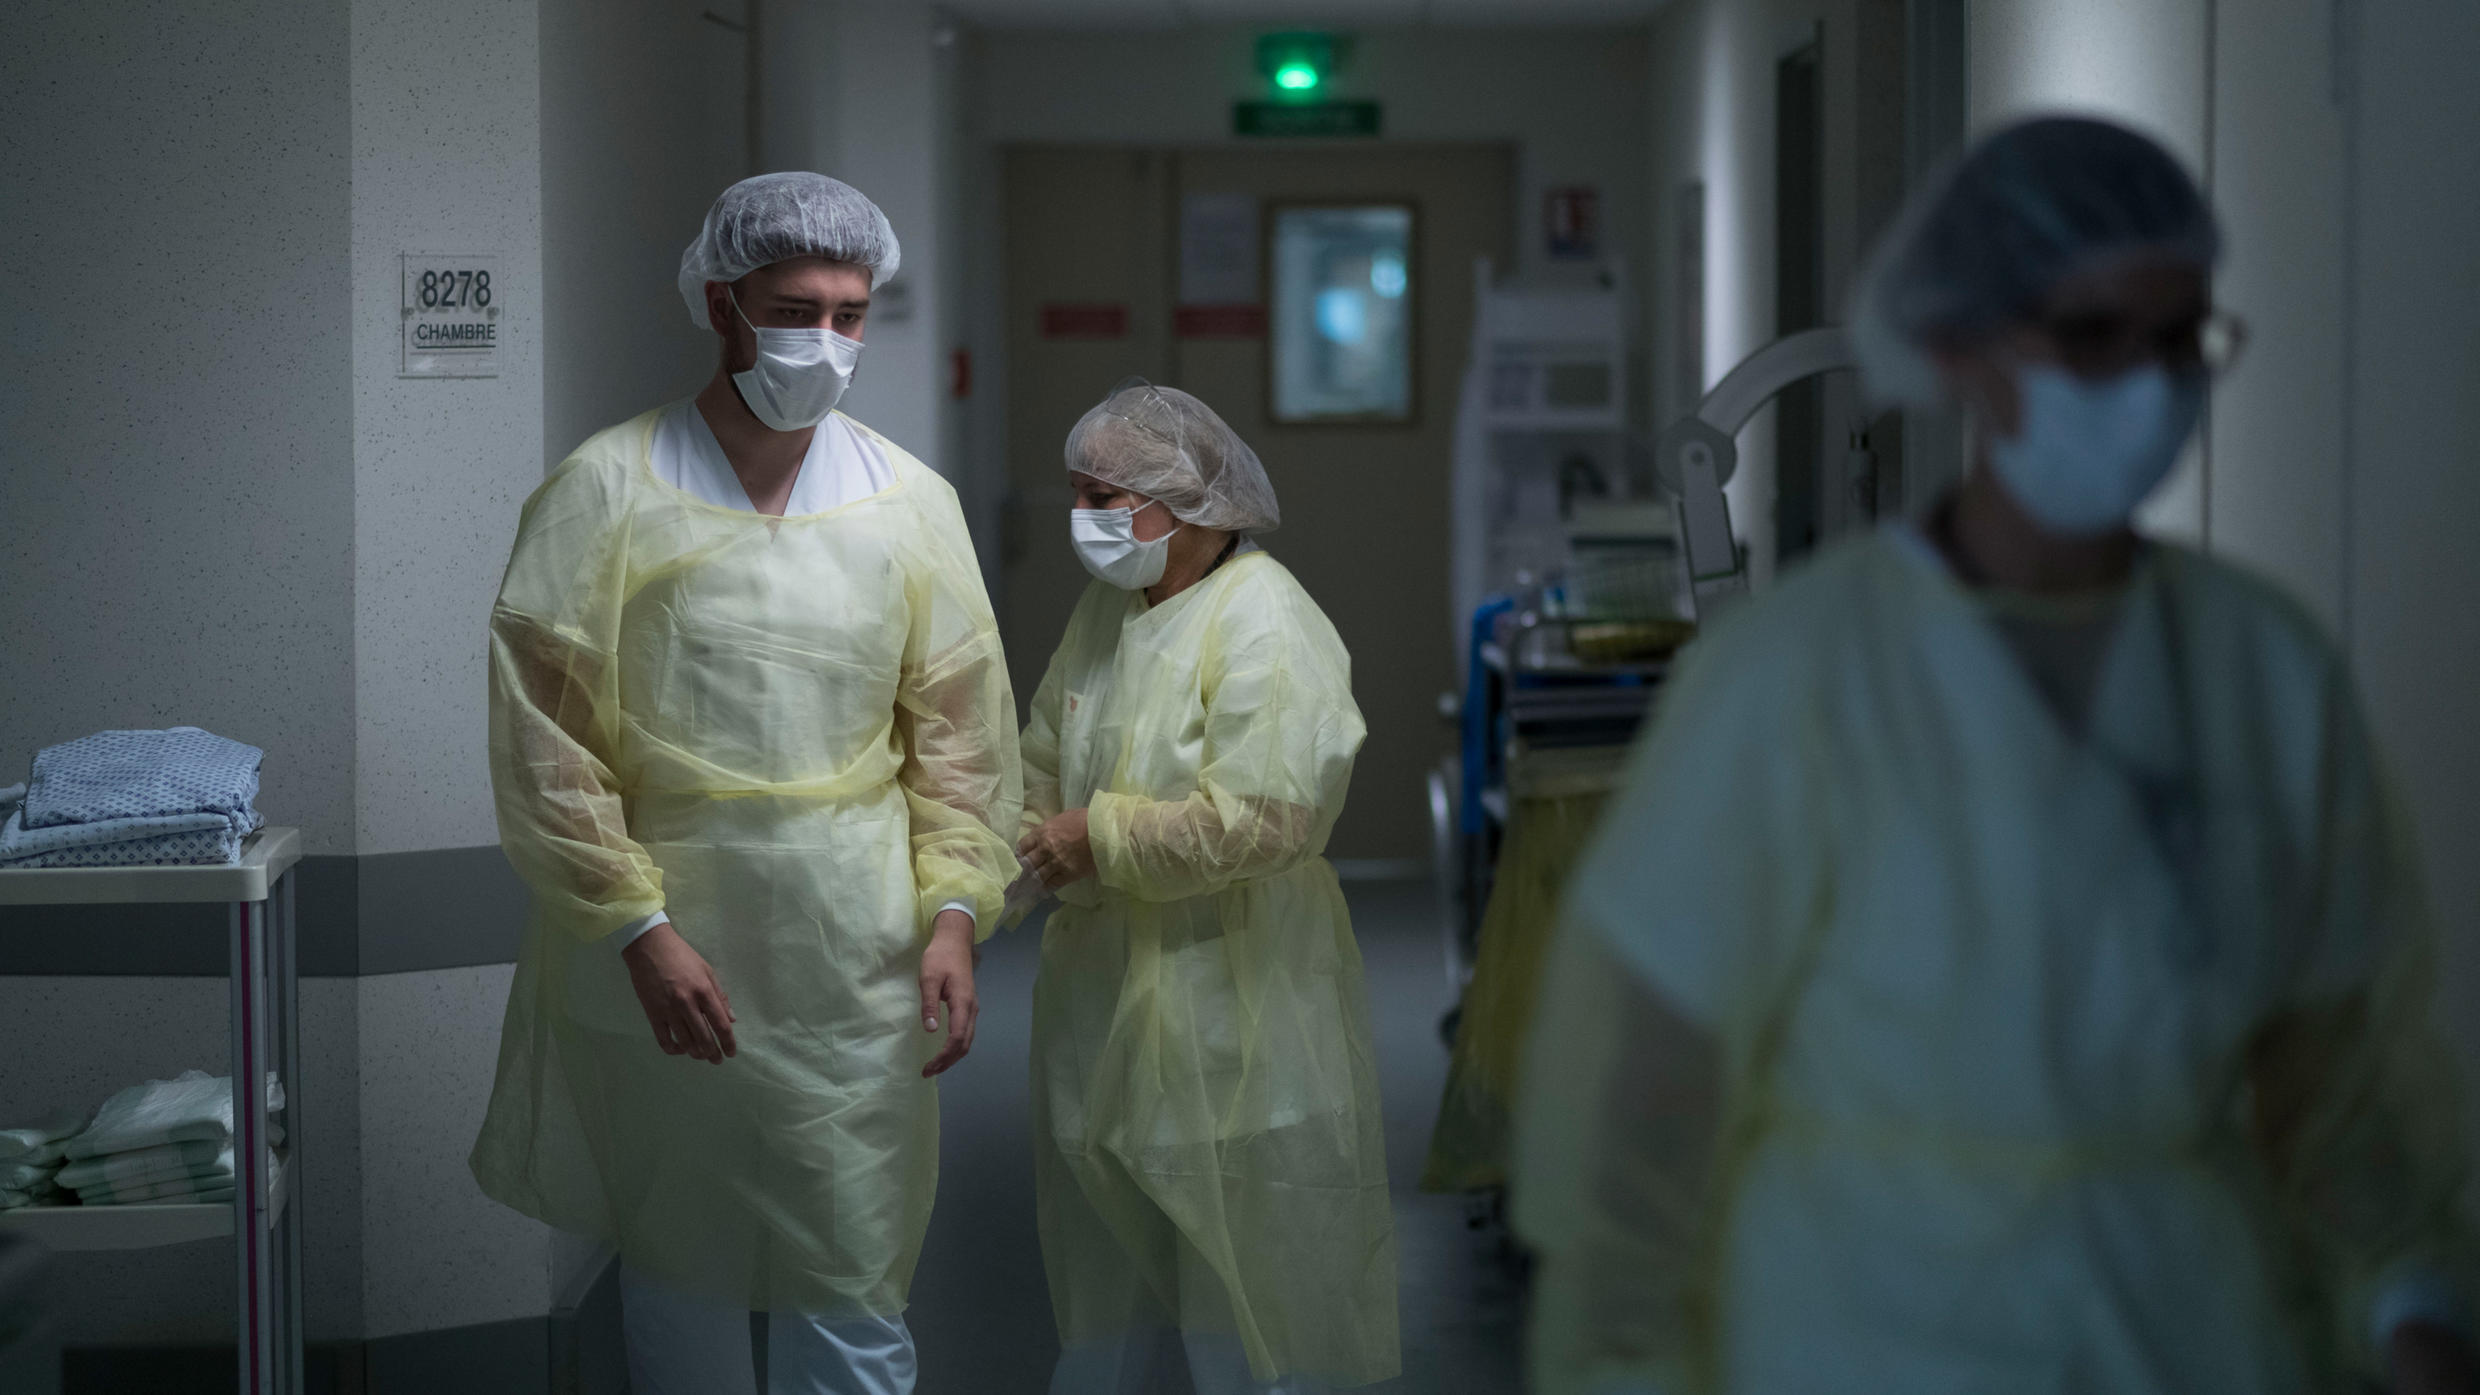 Physical medicine and rehabilitation unit staff members work at the Emile Muller Hospital in Mulhouse, on April 29, 2020.